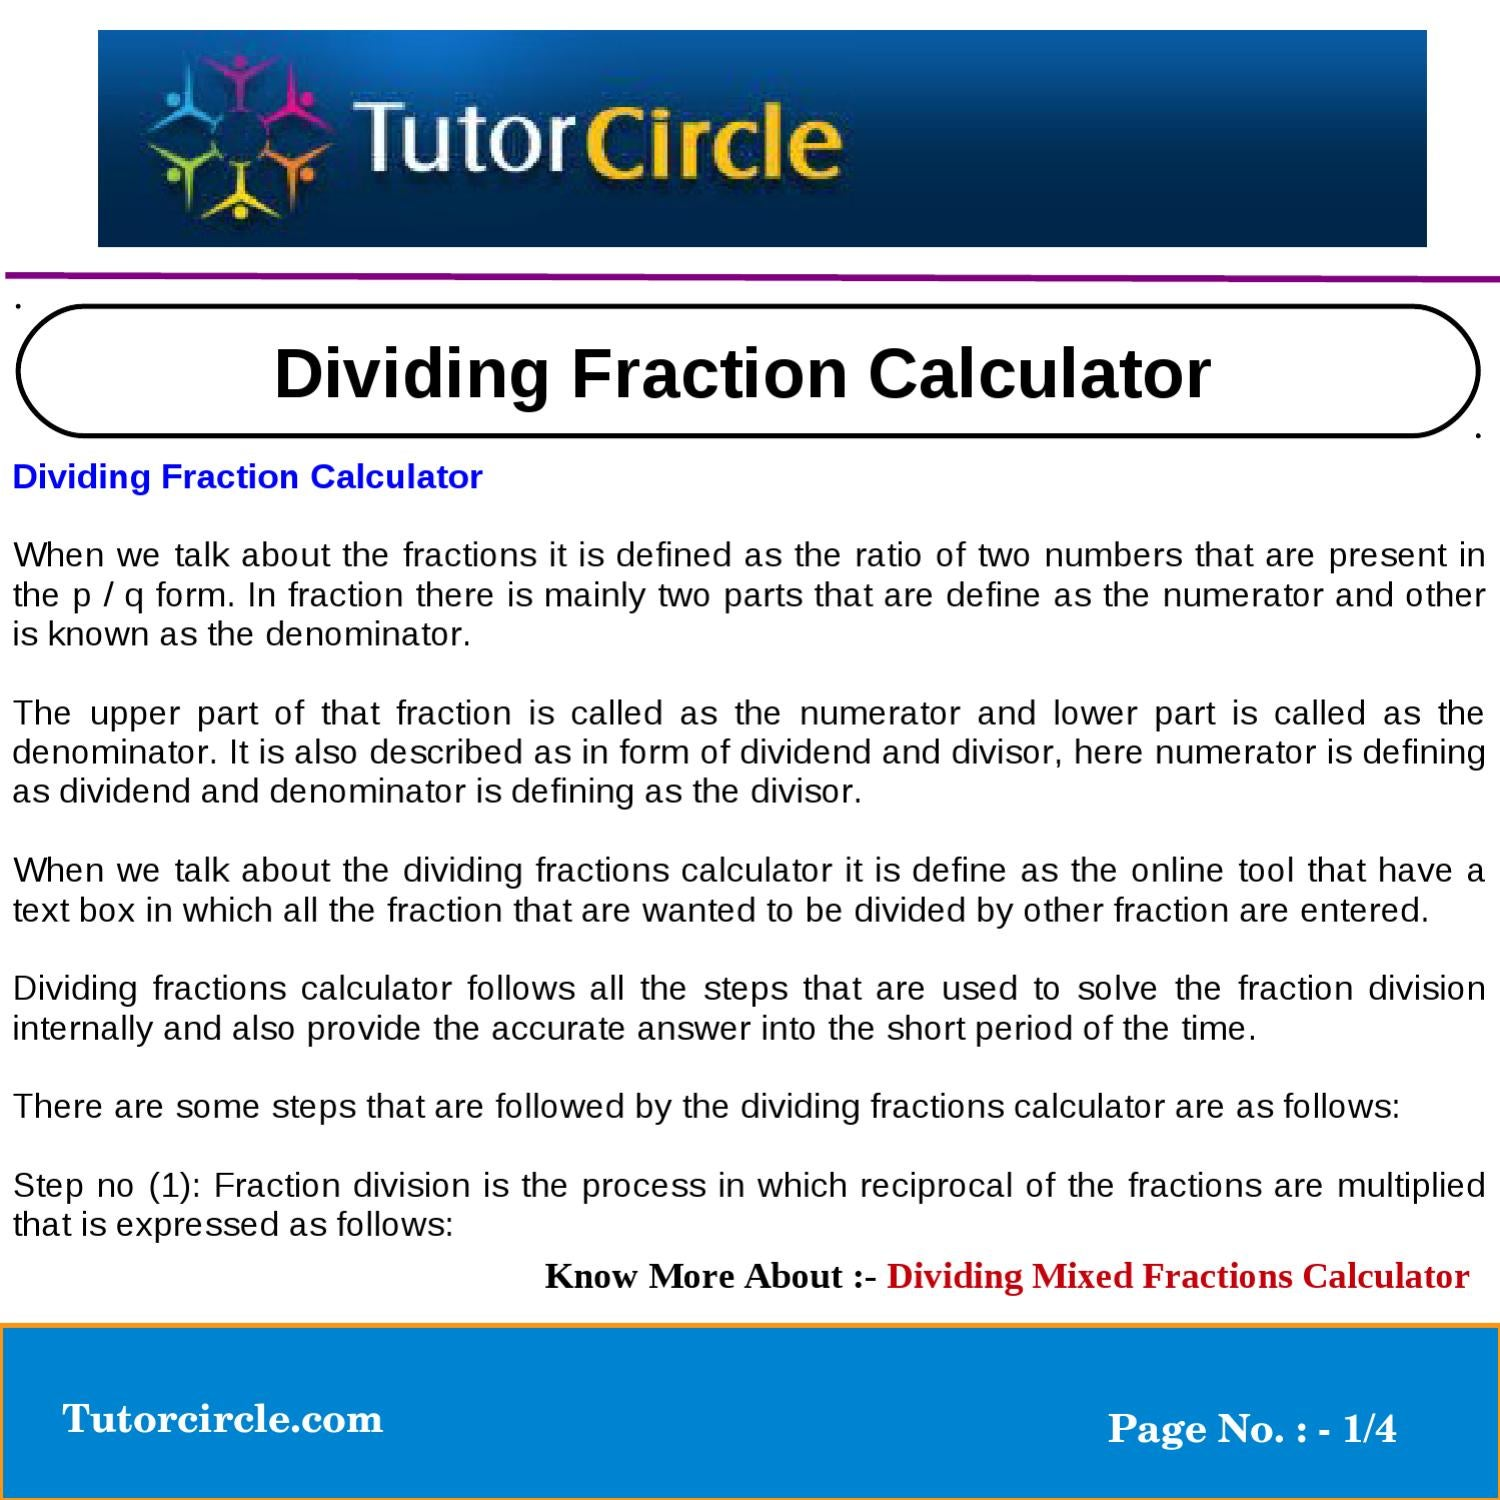 math worksheet : dividing fraction calculator by tutorcircle team  issuu : Ratio To Fraction Calculator